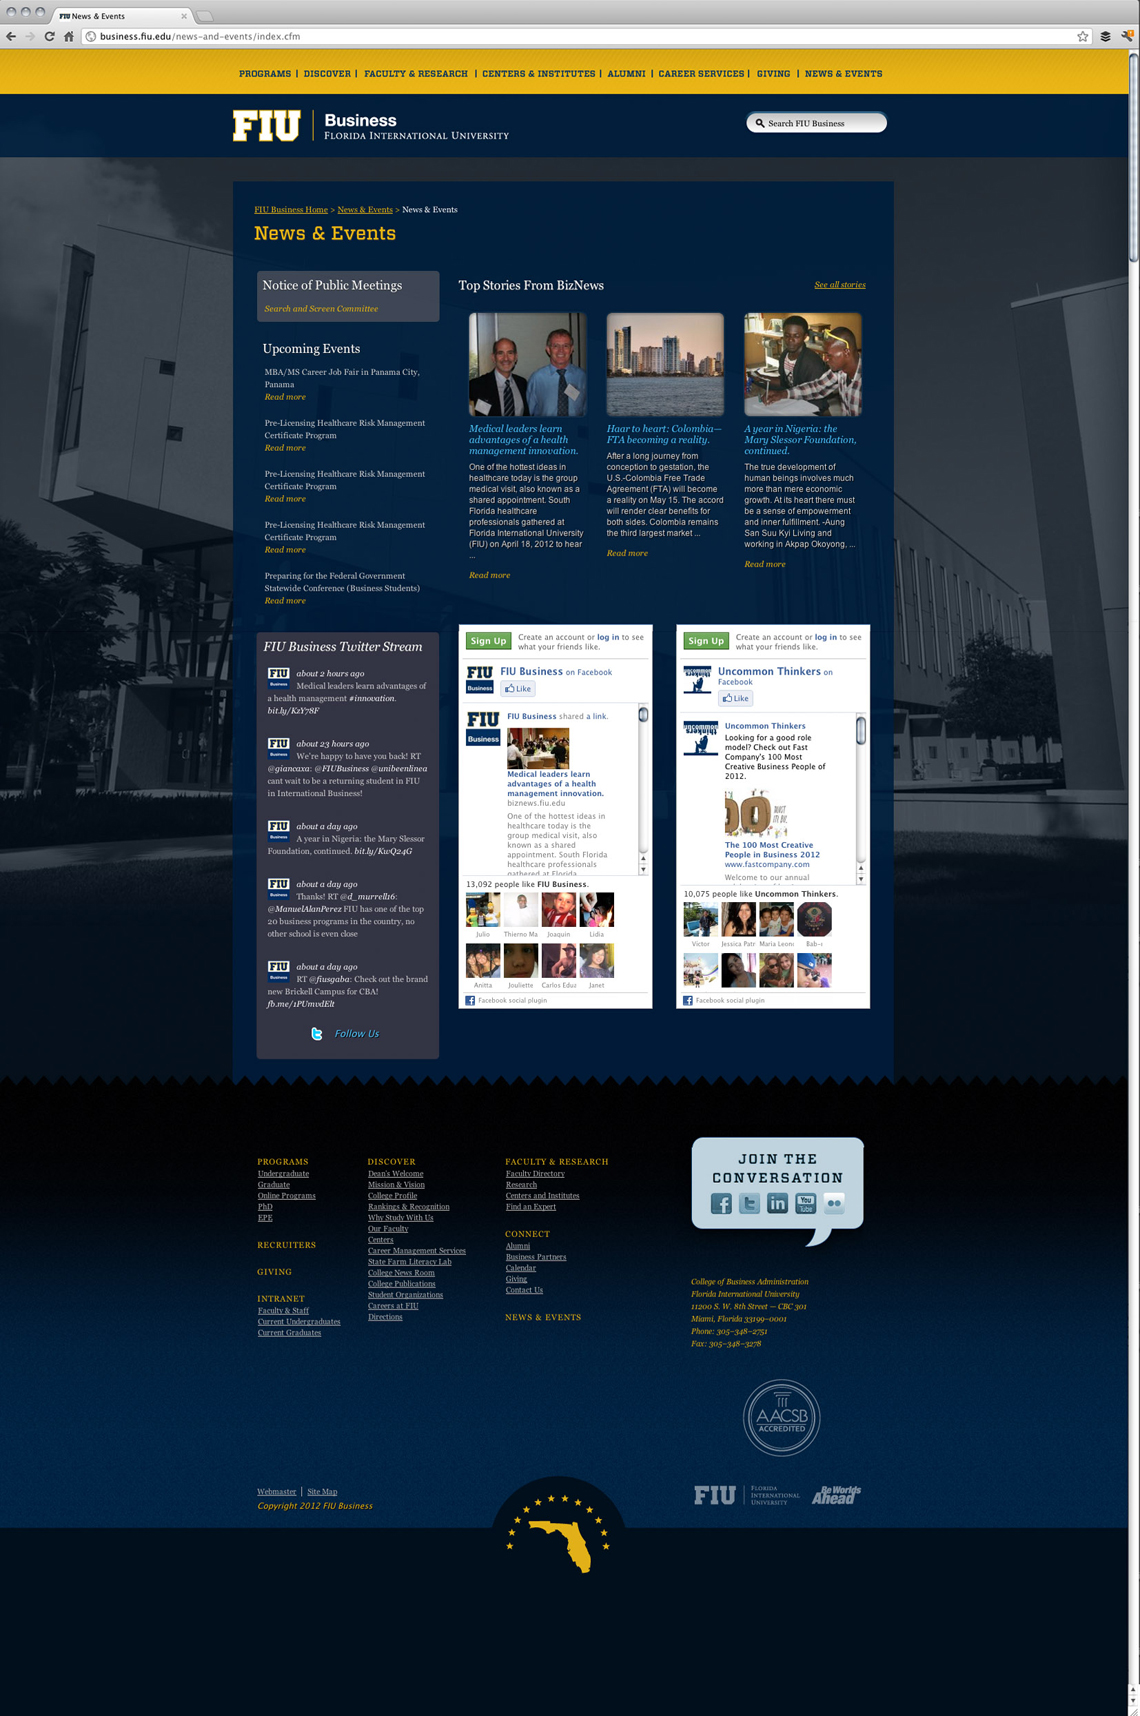 FIU Business Website Design News & Event Page